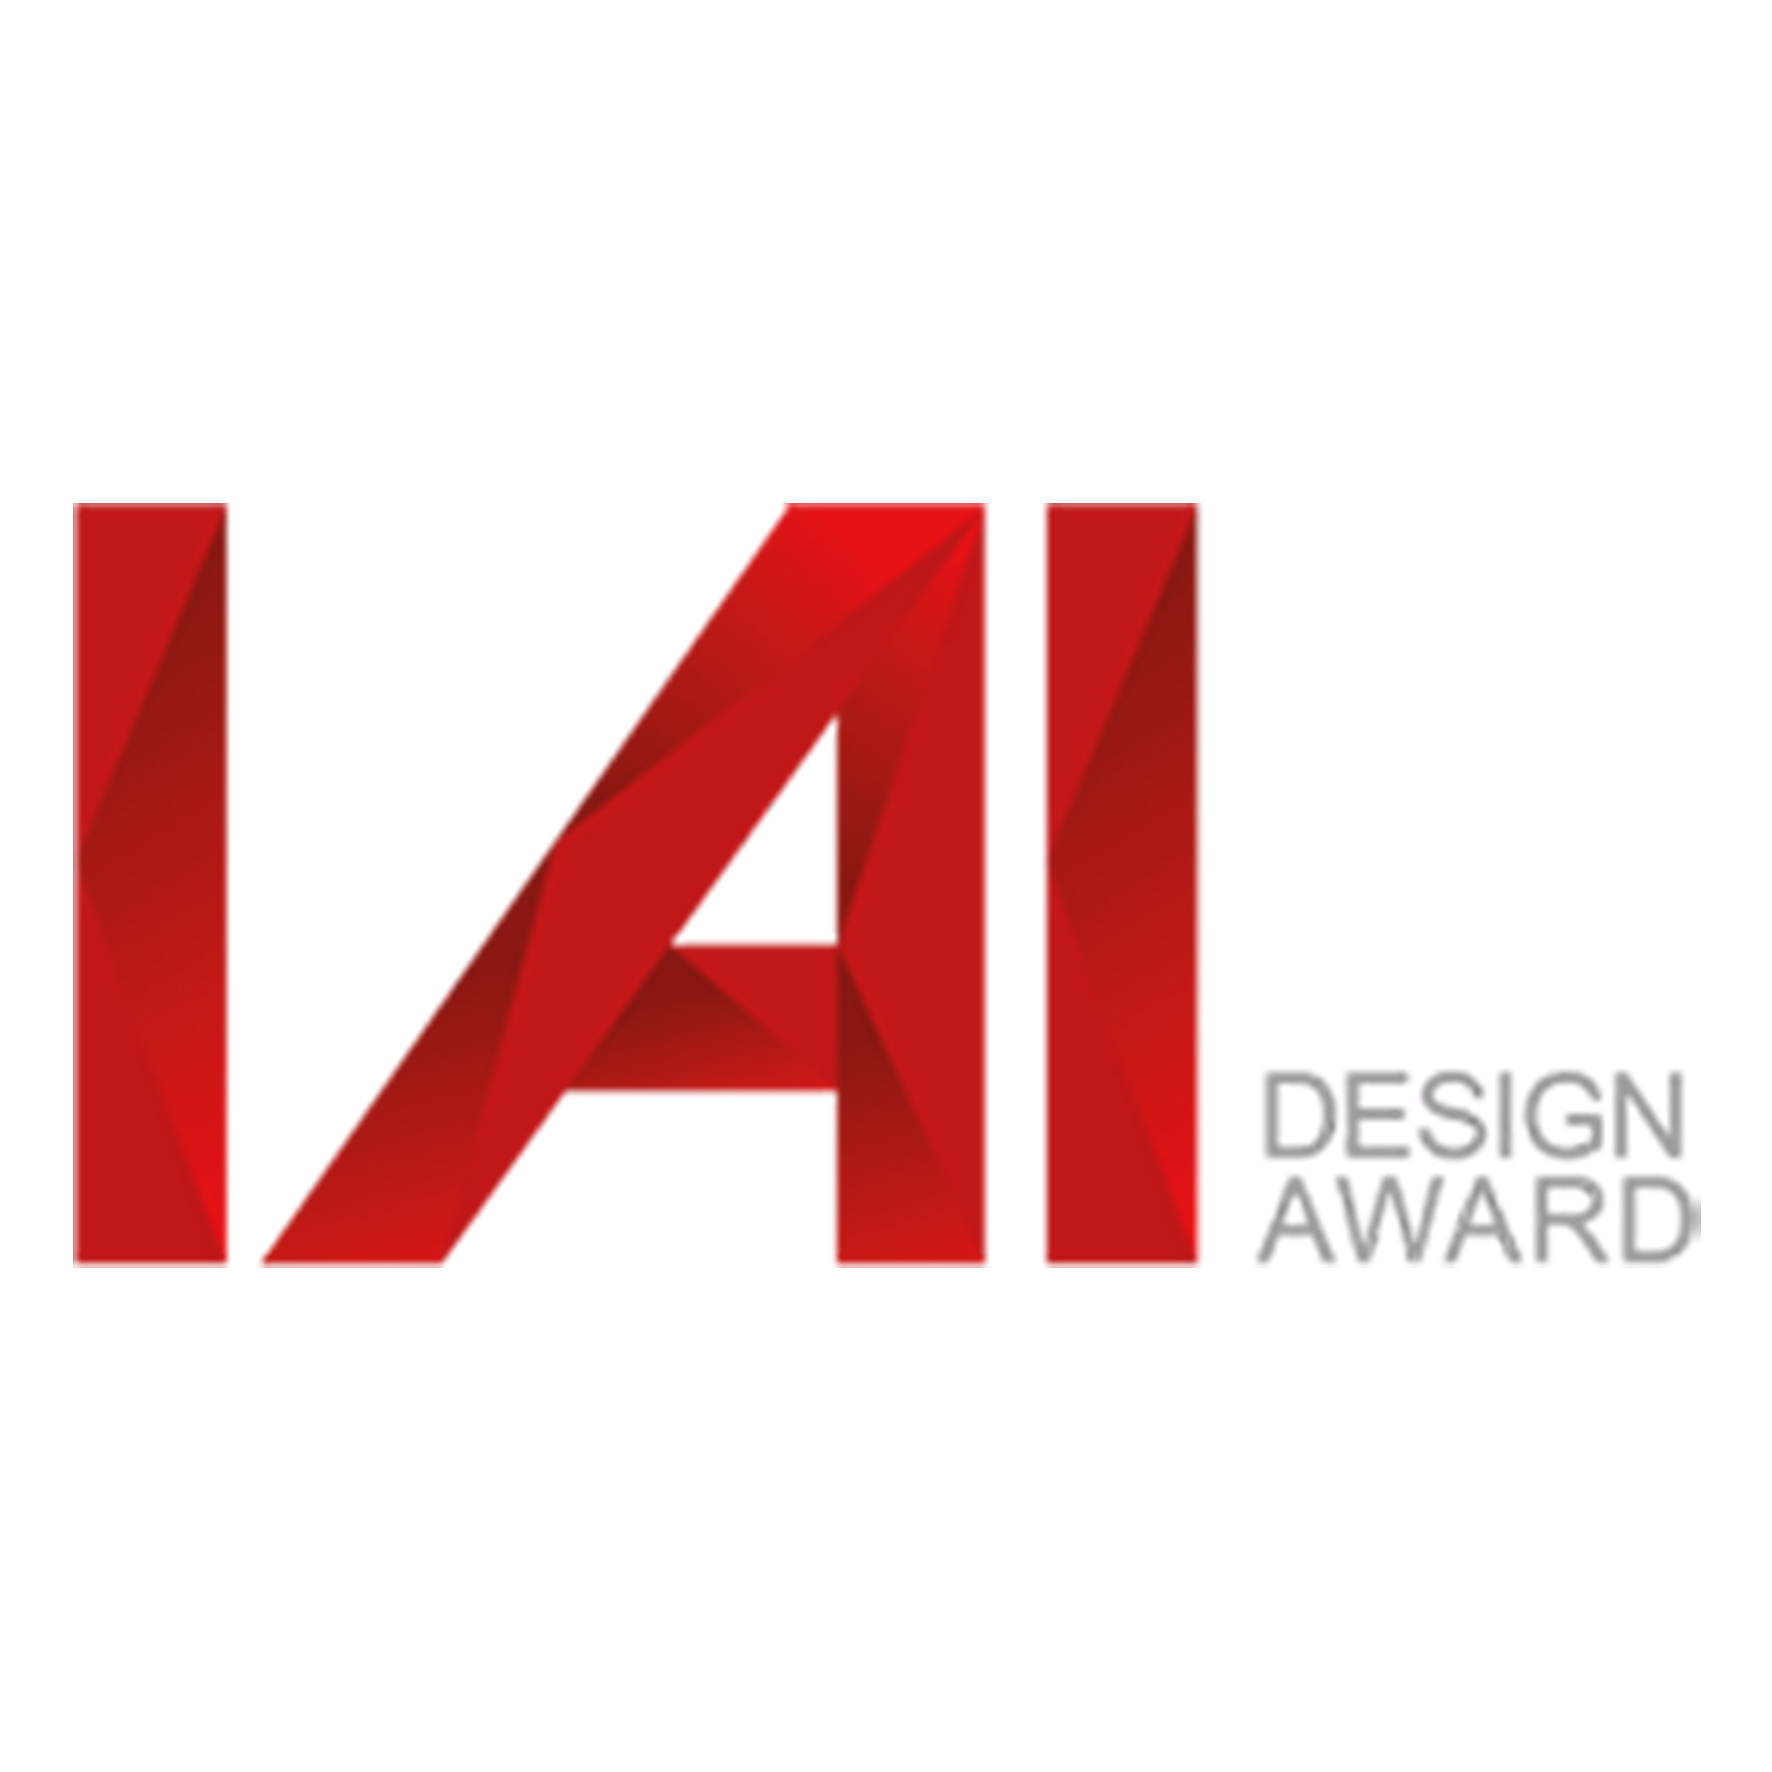 Design Excellence Award - IAI DESIGN AWARD 2014, Asia Pacific Designers Federation (IAI设计优胜奖 - 2014年度IAI设计大奖, 亚太设计师联盟)